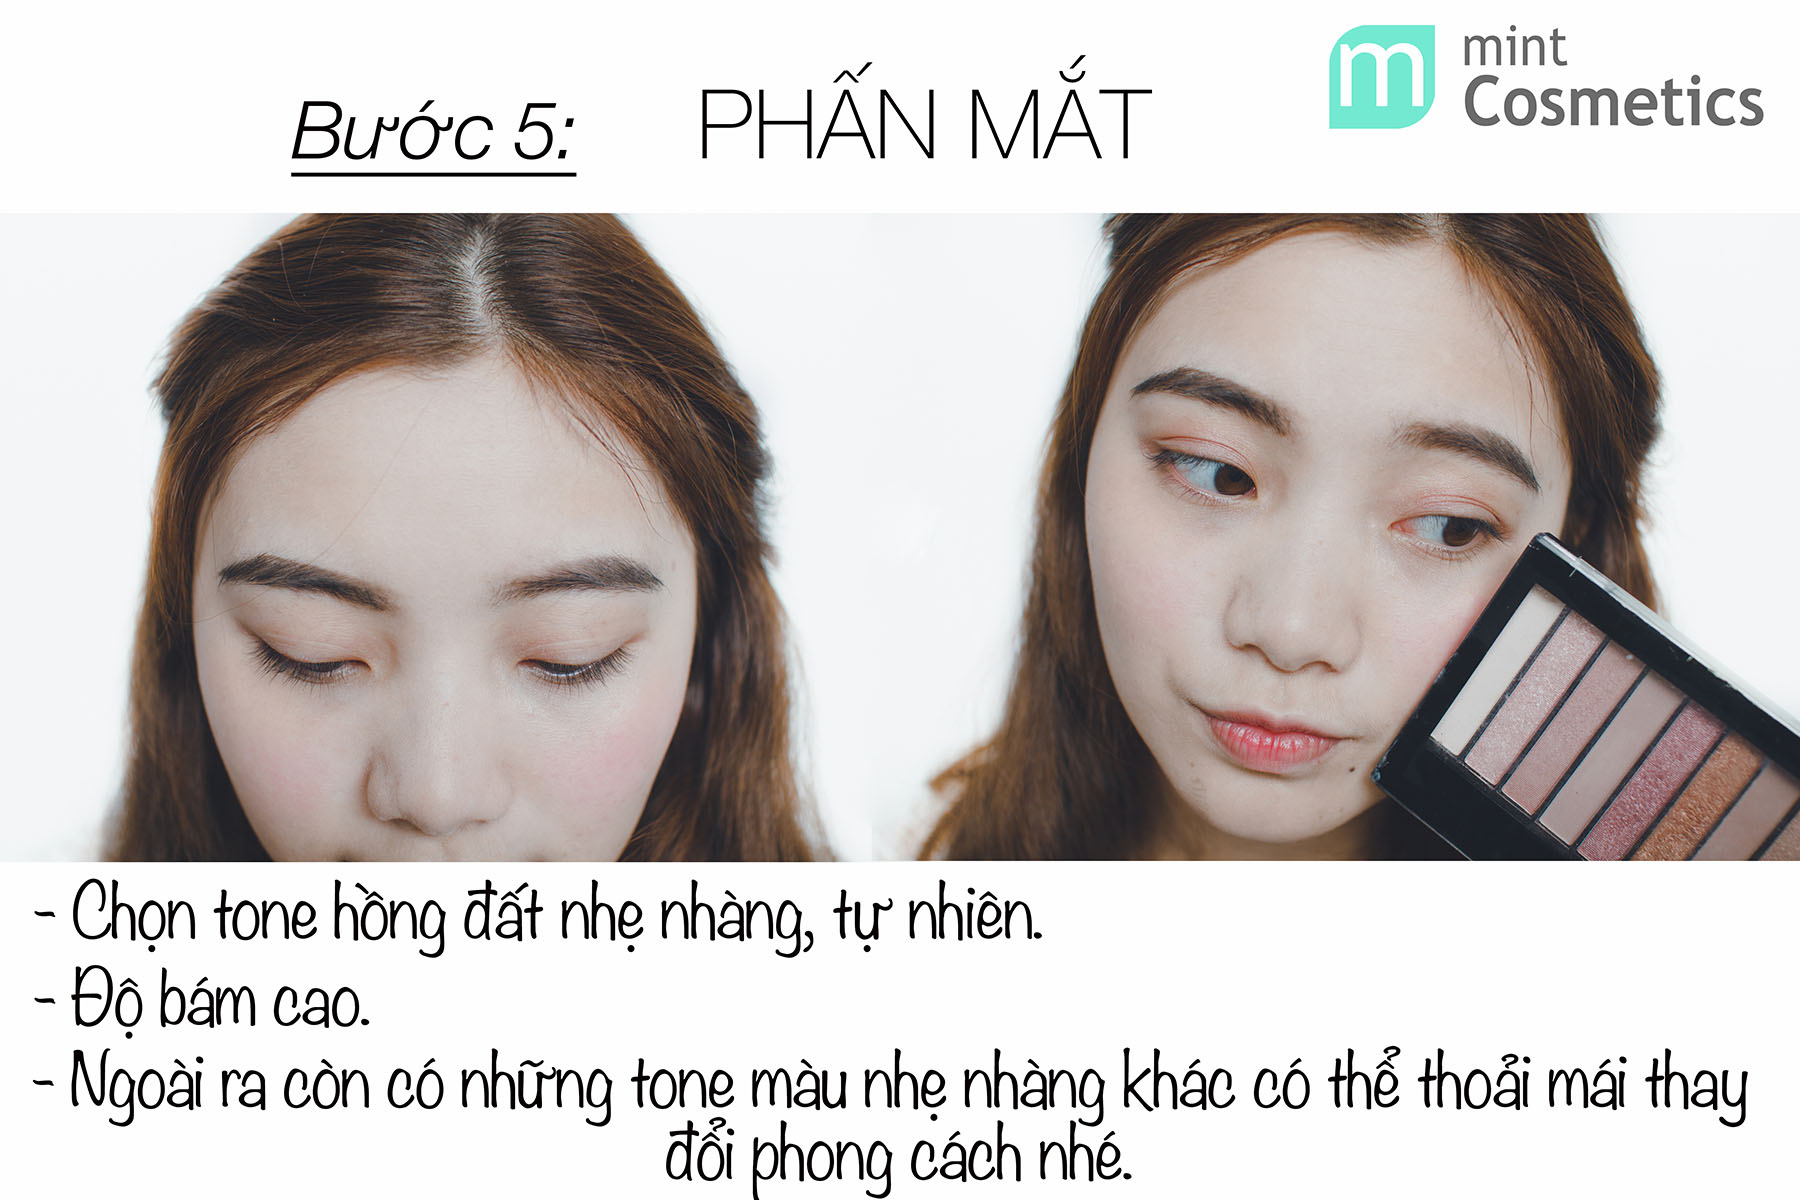 make-up-back-to-school-phan-mat